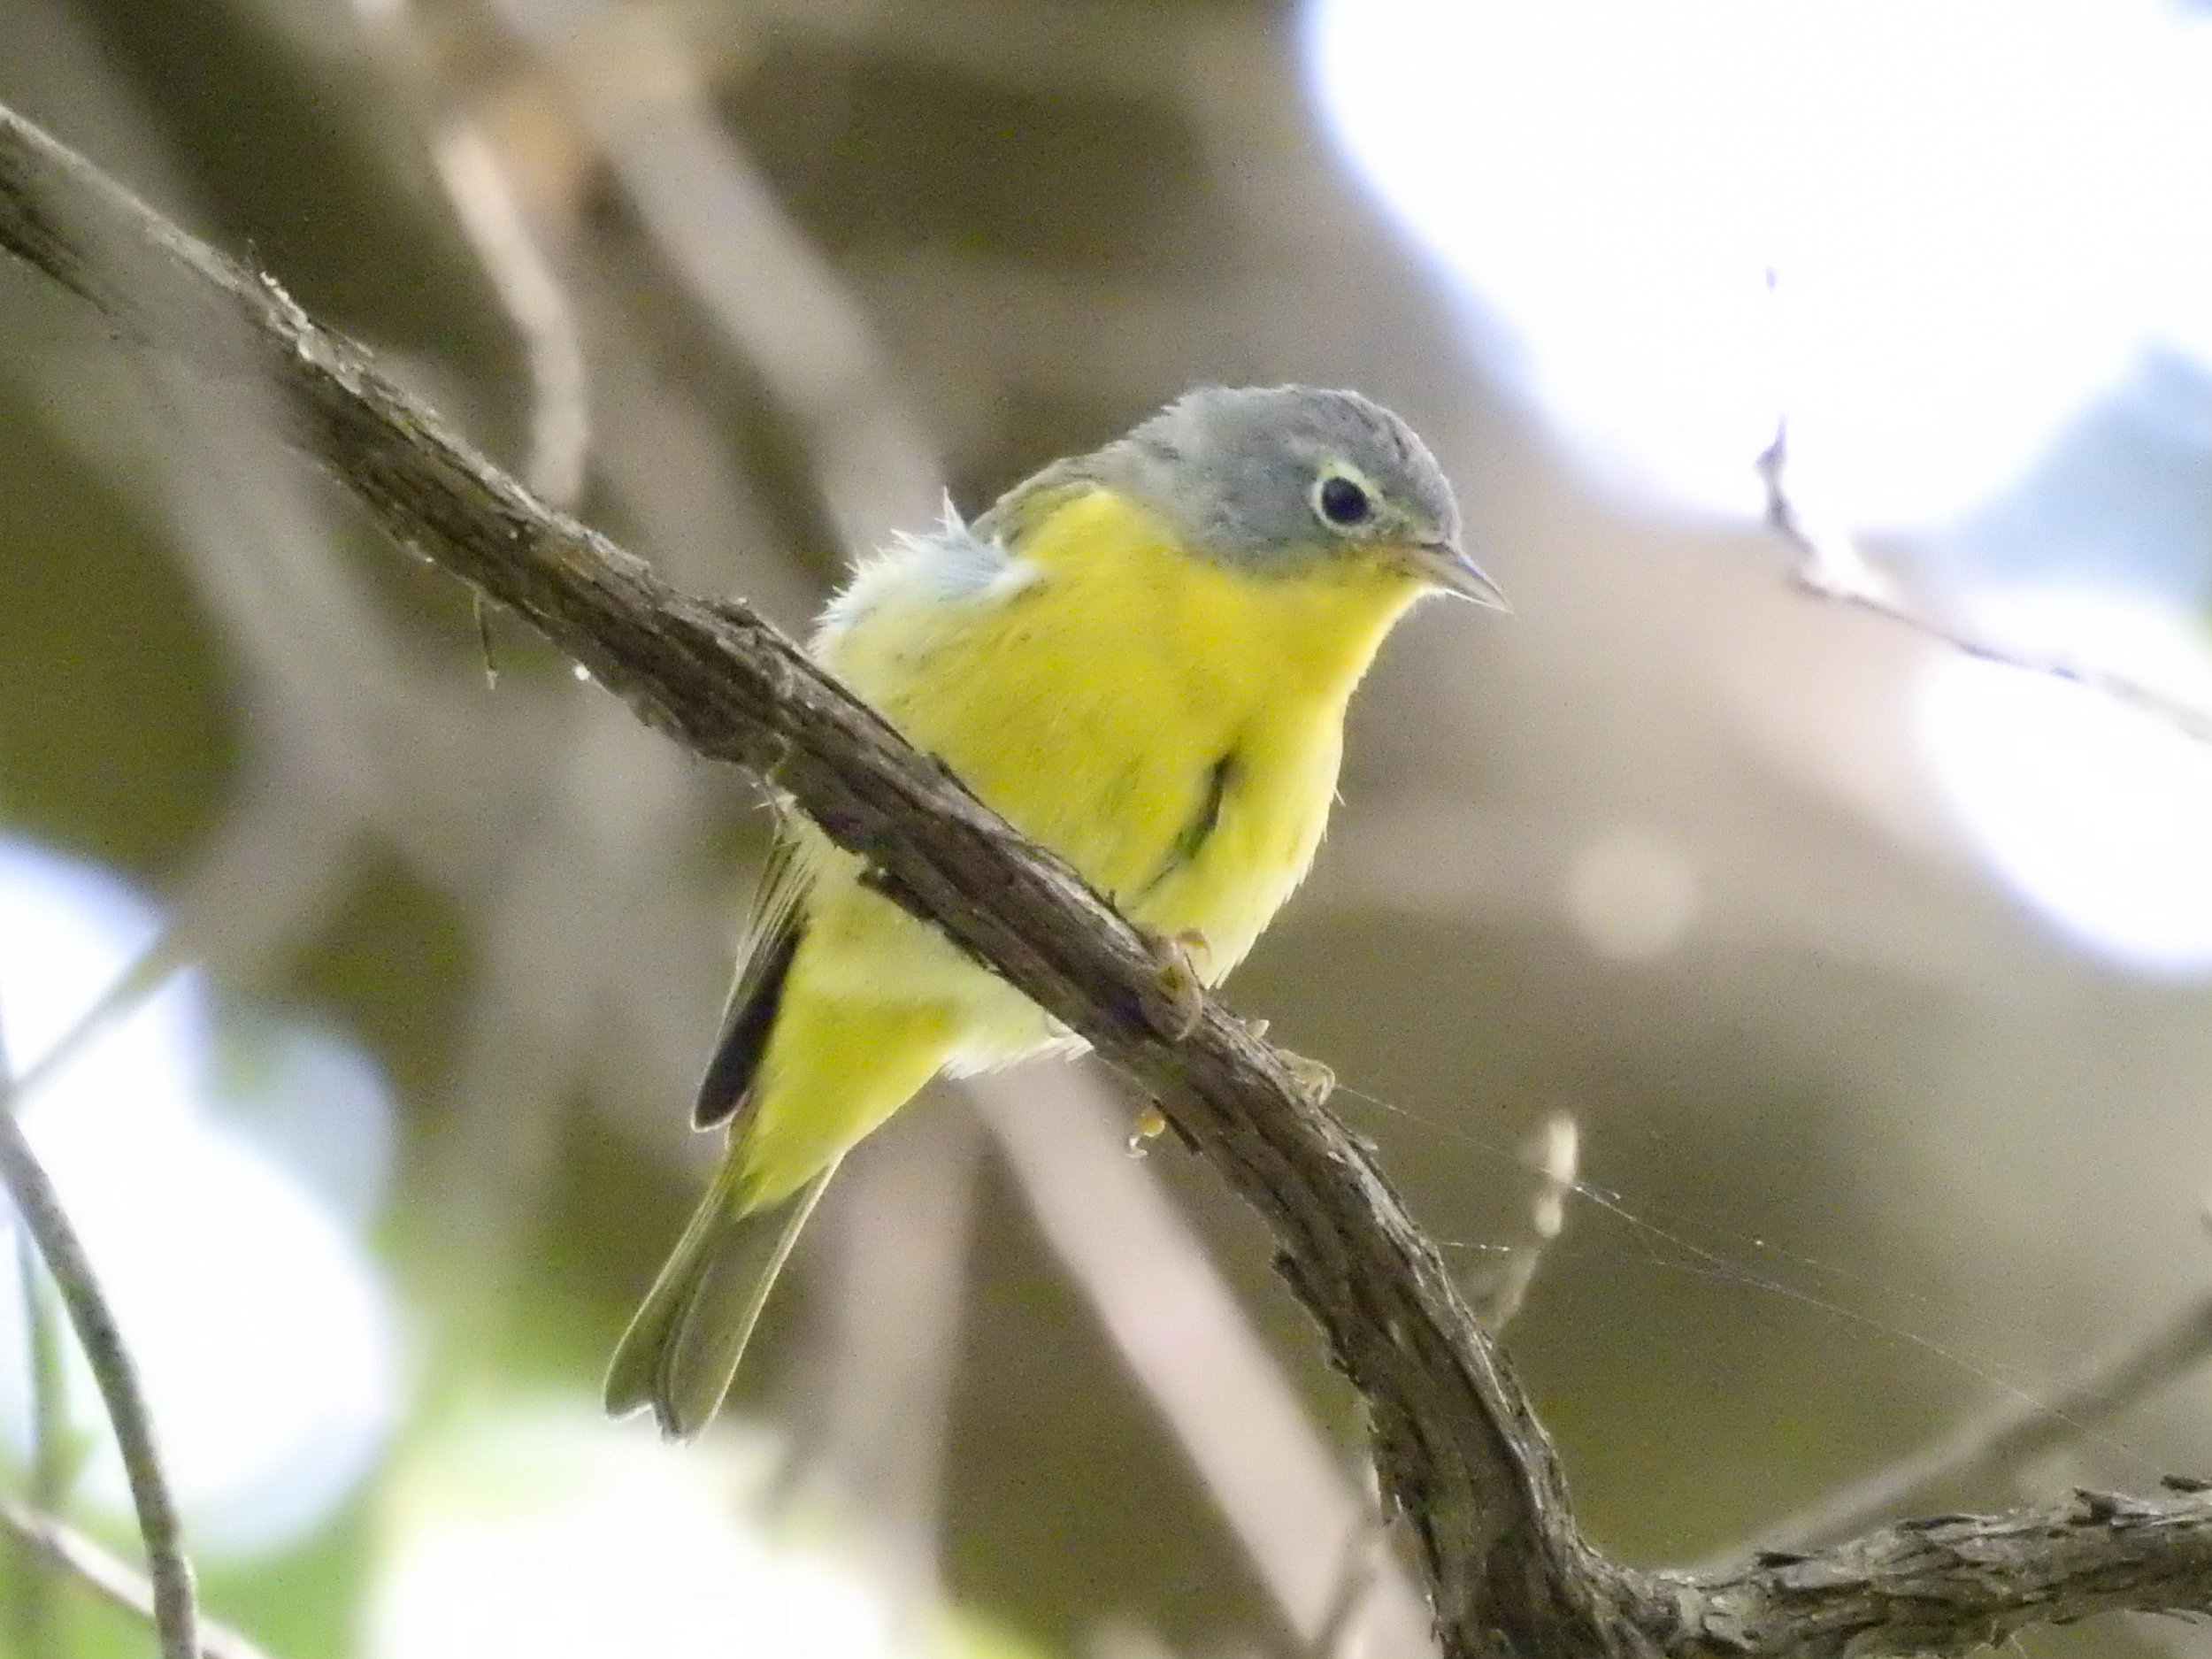 Nashville Warbler, April 16, 2017